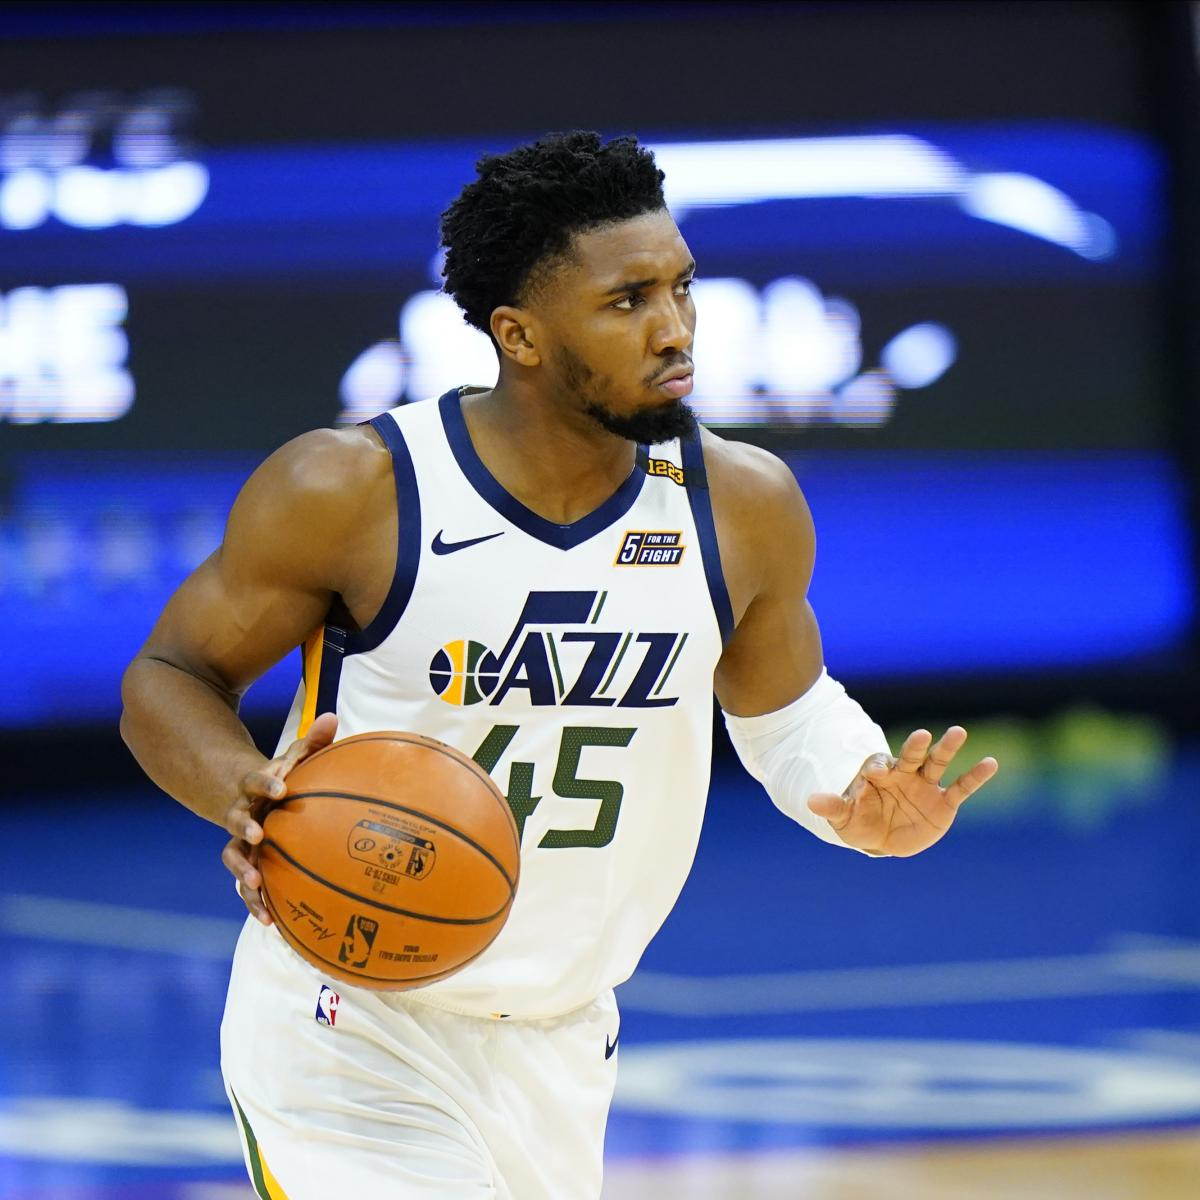 <p>Jazz's Donovan Mitchell, Rudy Gobert Fined for Criticizing Refs After 76ers Loss thumbnail